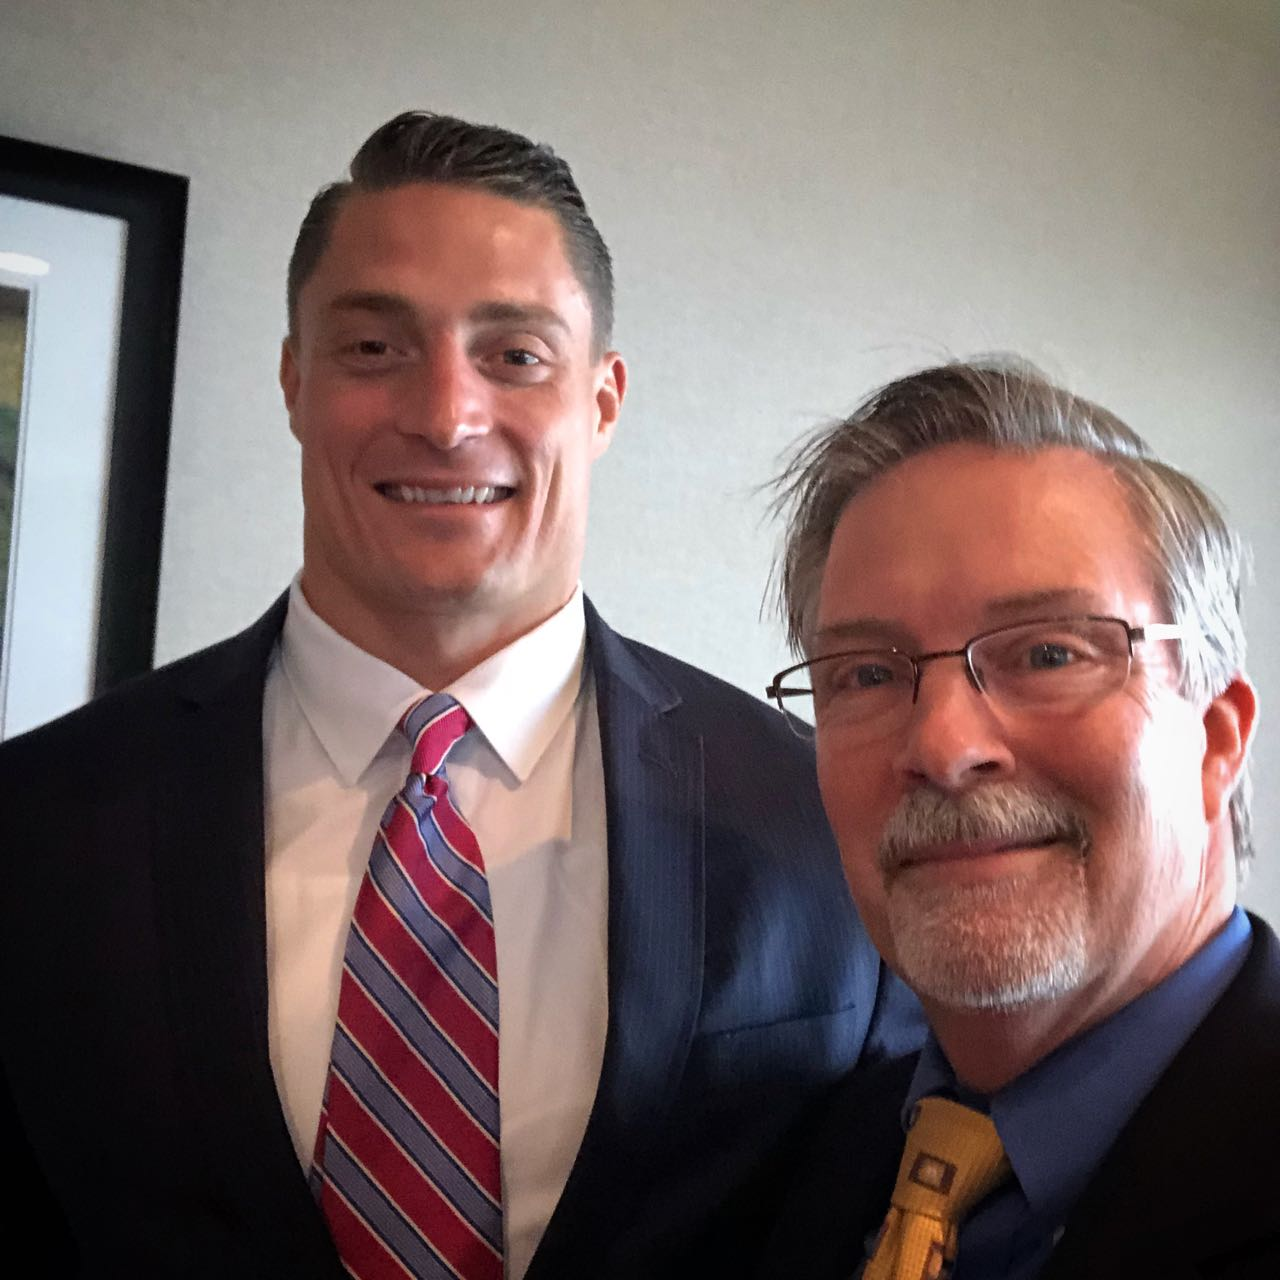 Meeting Paul Posluszny